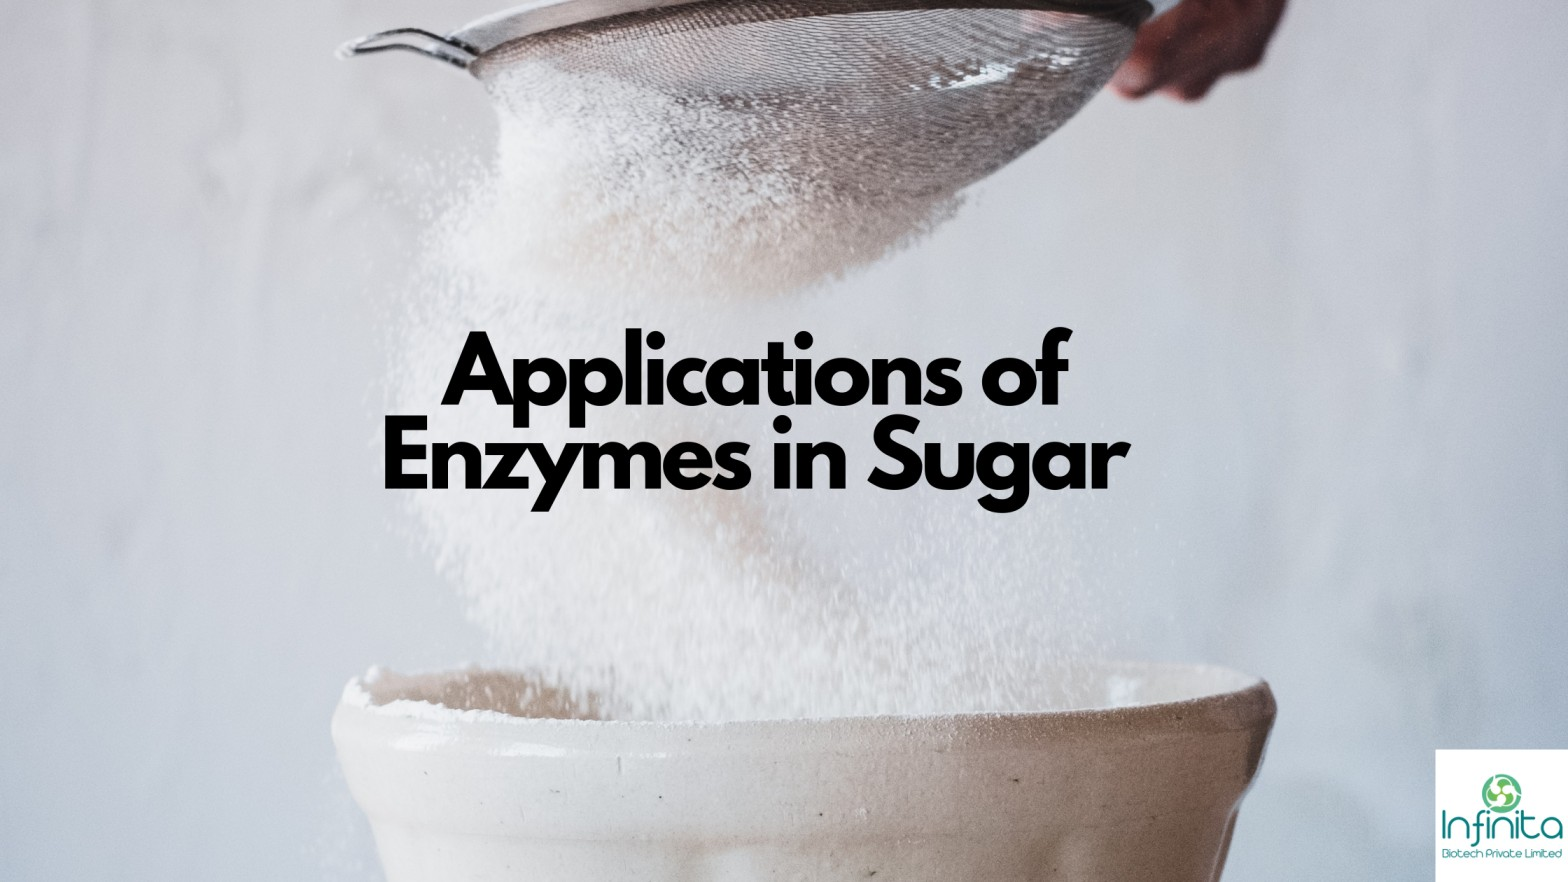 Applications of Enzymes in Sugar